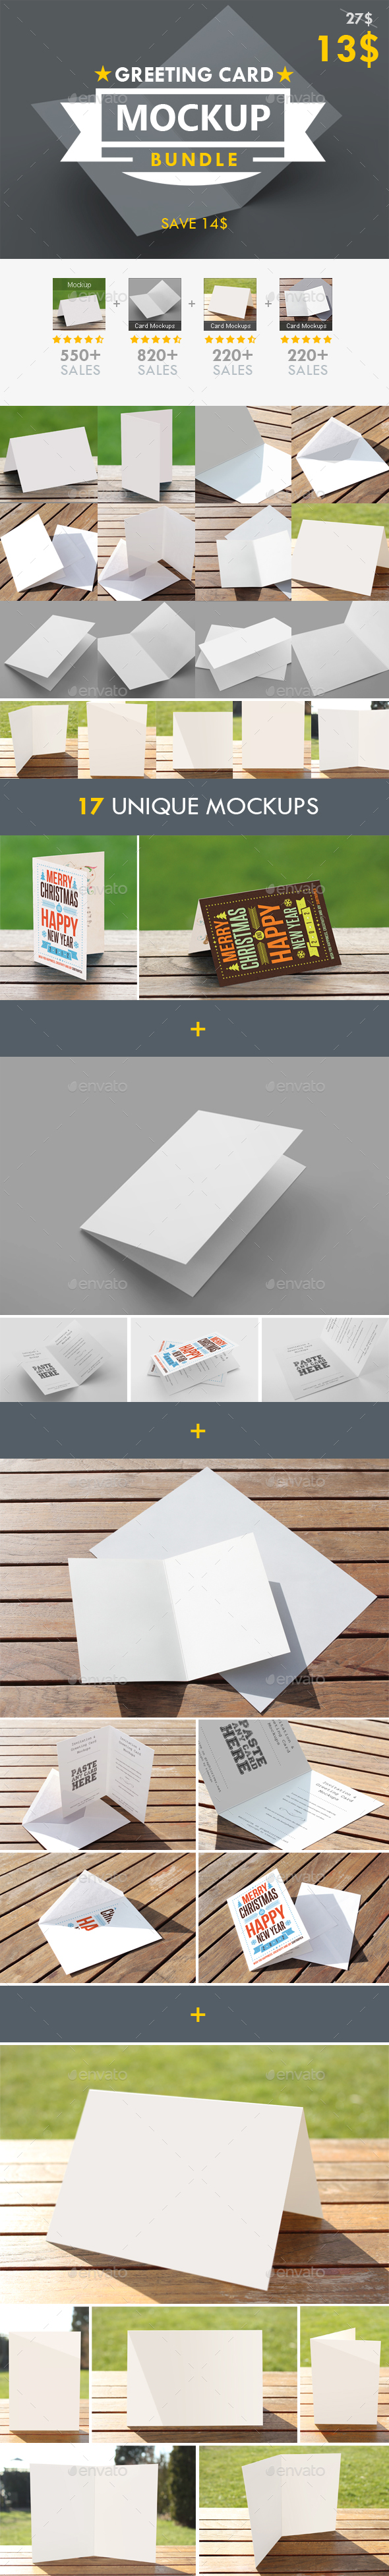 Greeting Card Mockup Bundle - Miscellaneous Print